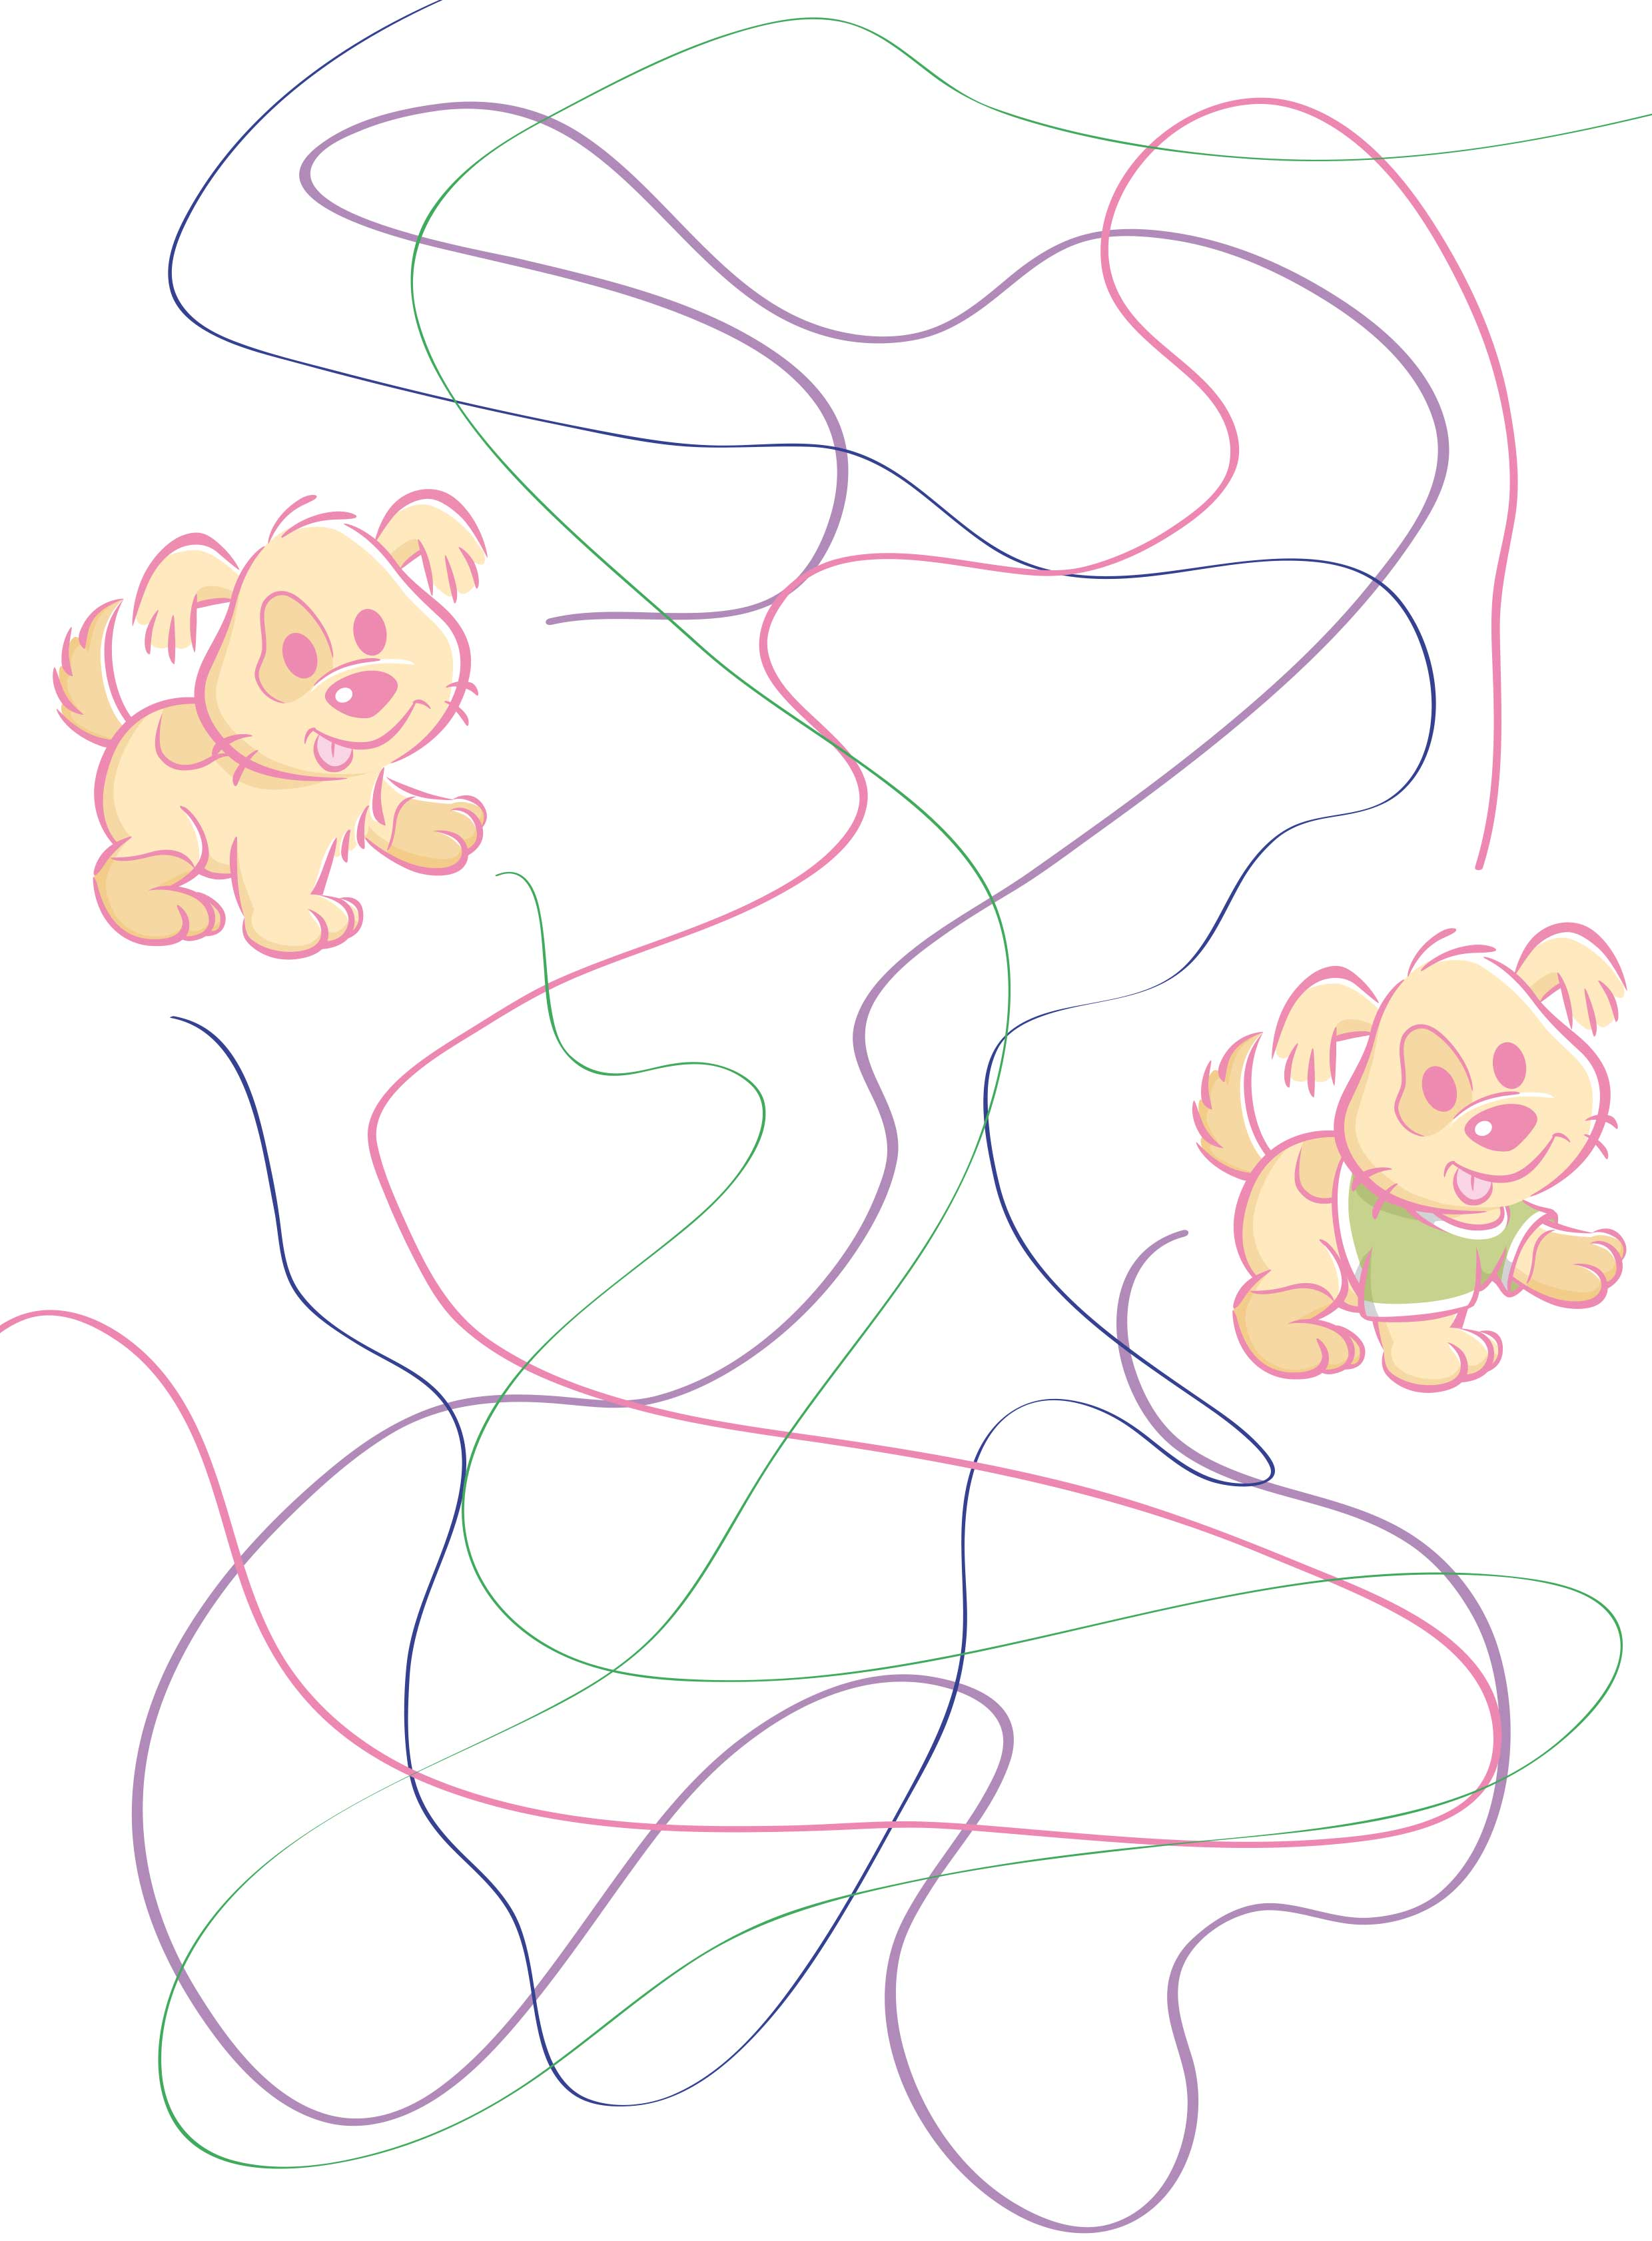 Download fun activities and color-ins to print out and